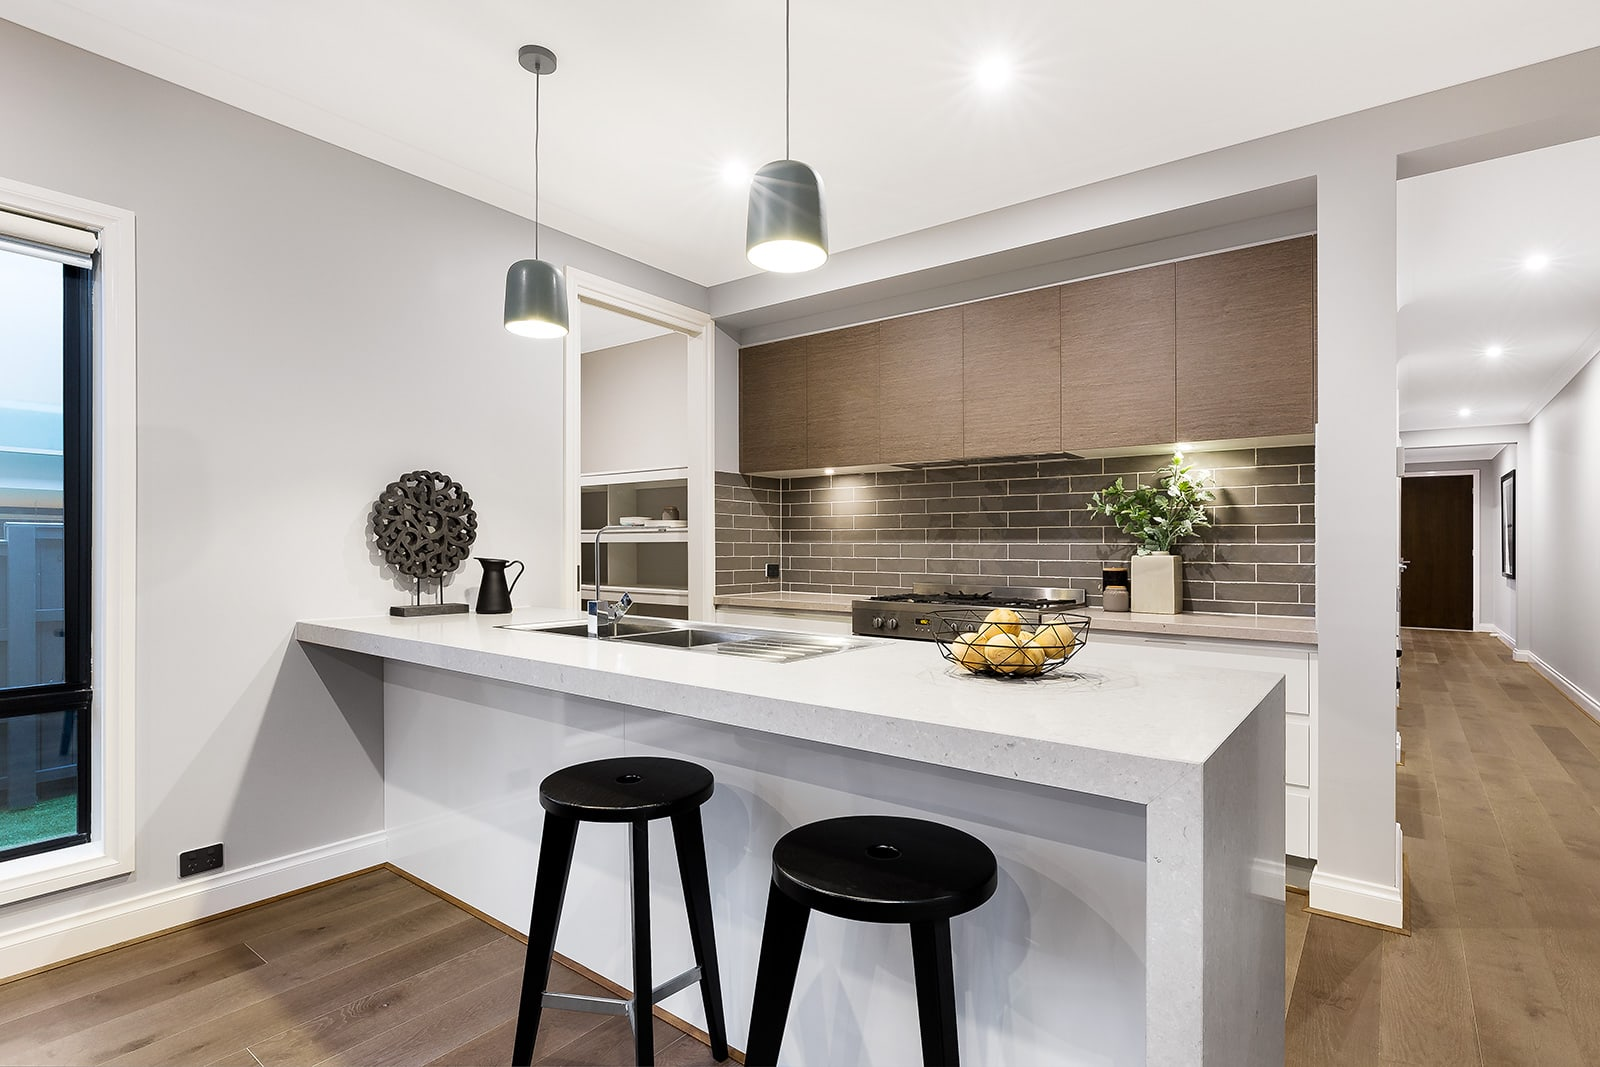 grey-and-white-kitchen-ideas-by-metricon-grange-25-display-home.jpg